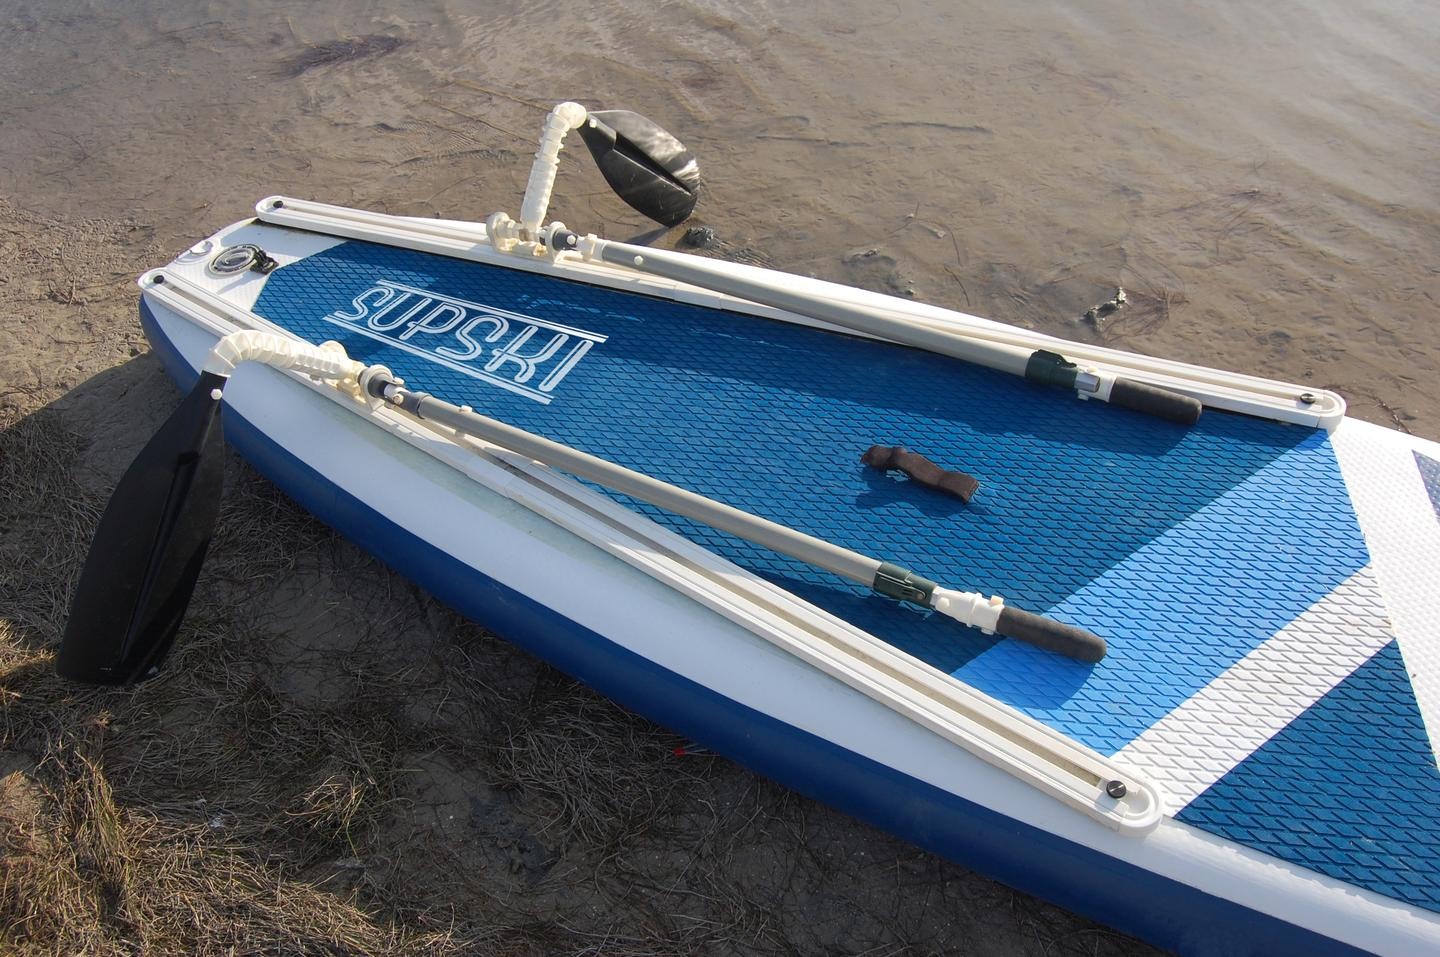 A close look at the Supski's paddling system